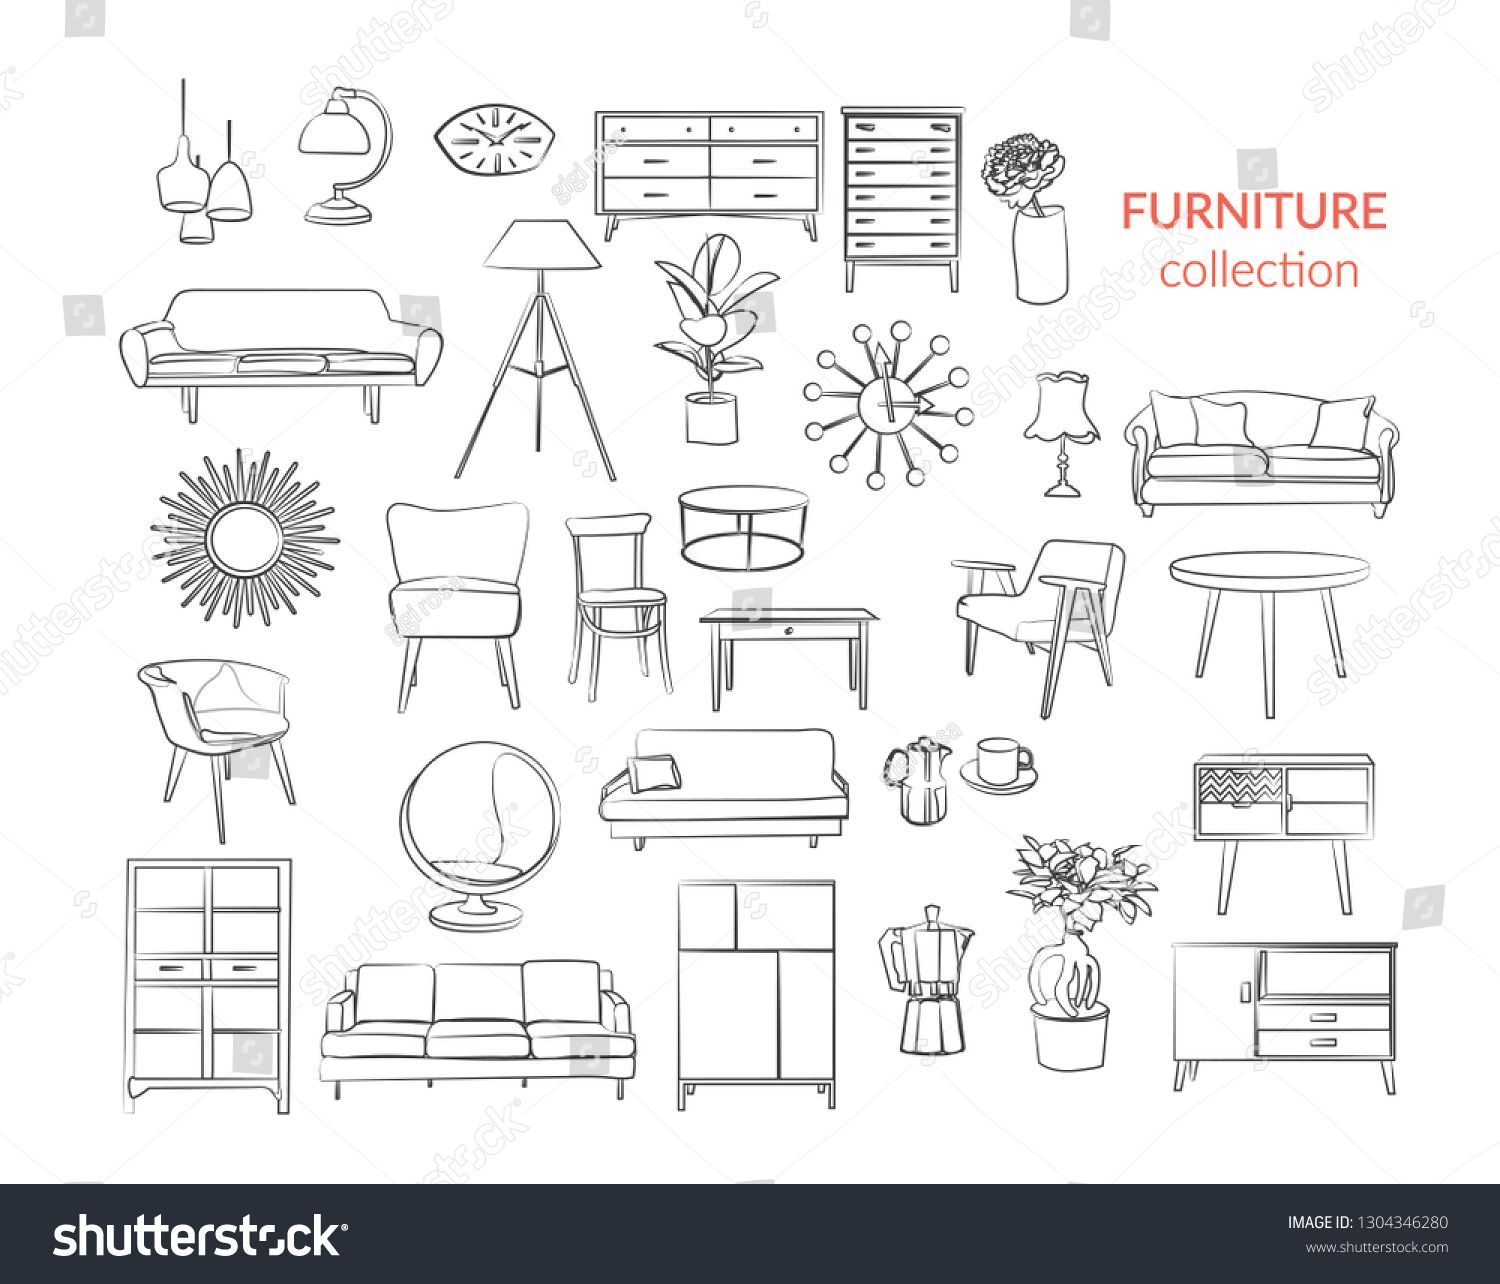 Furniture Collection Vector Interior Design Elements Outlined